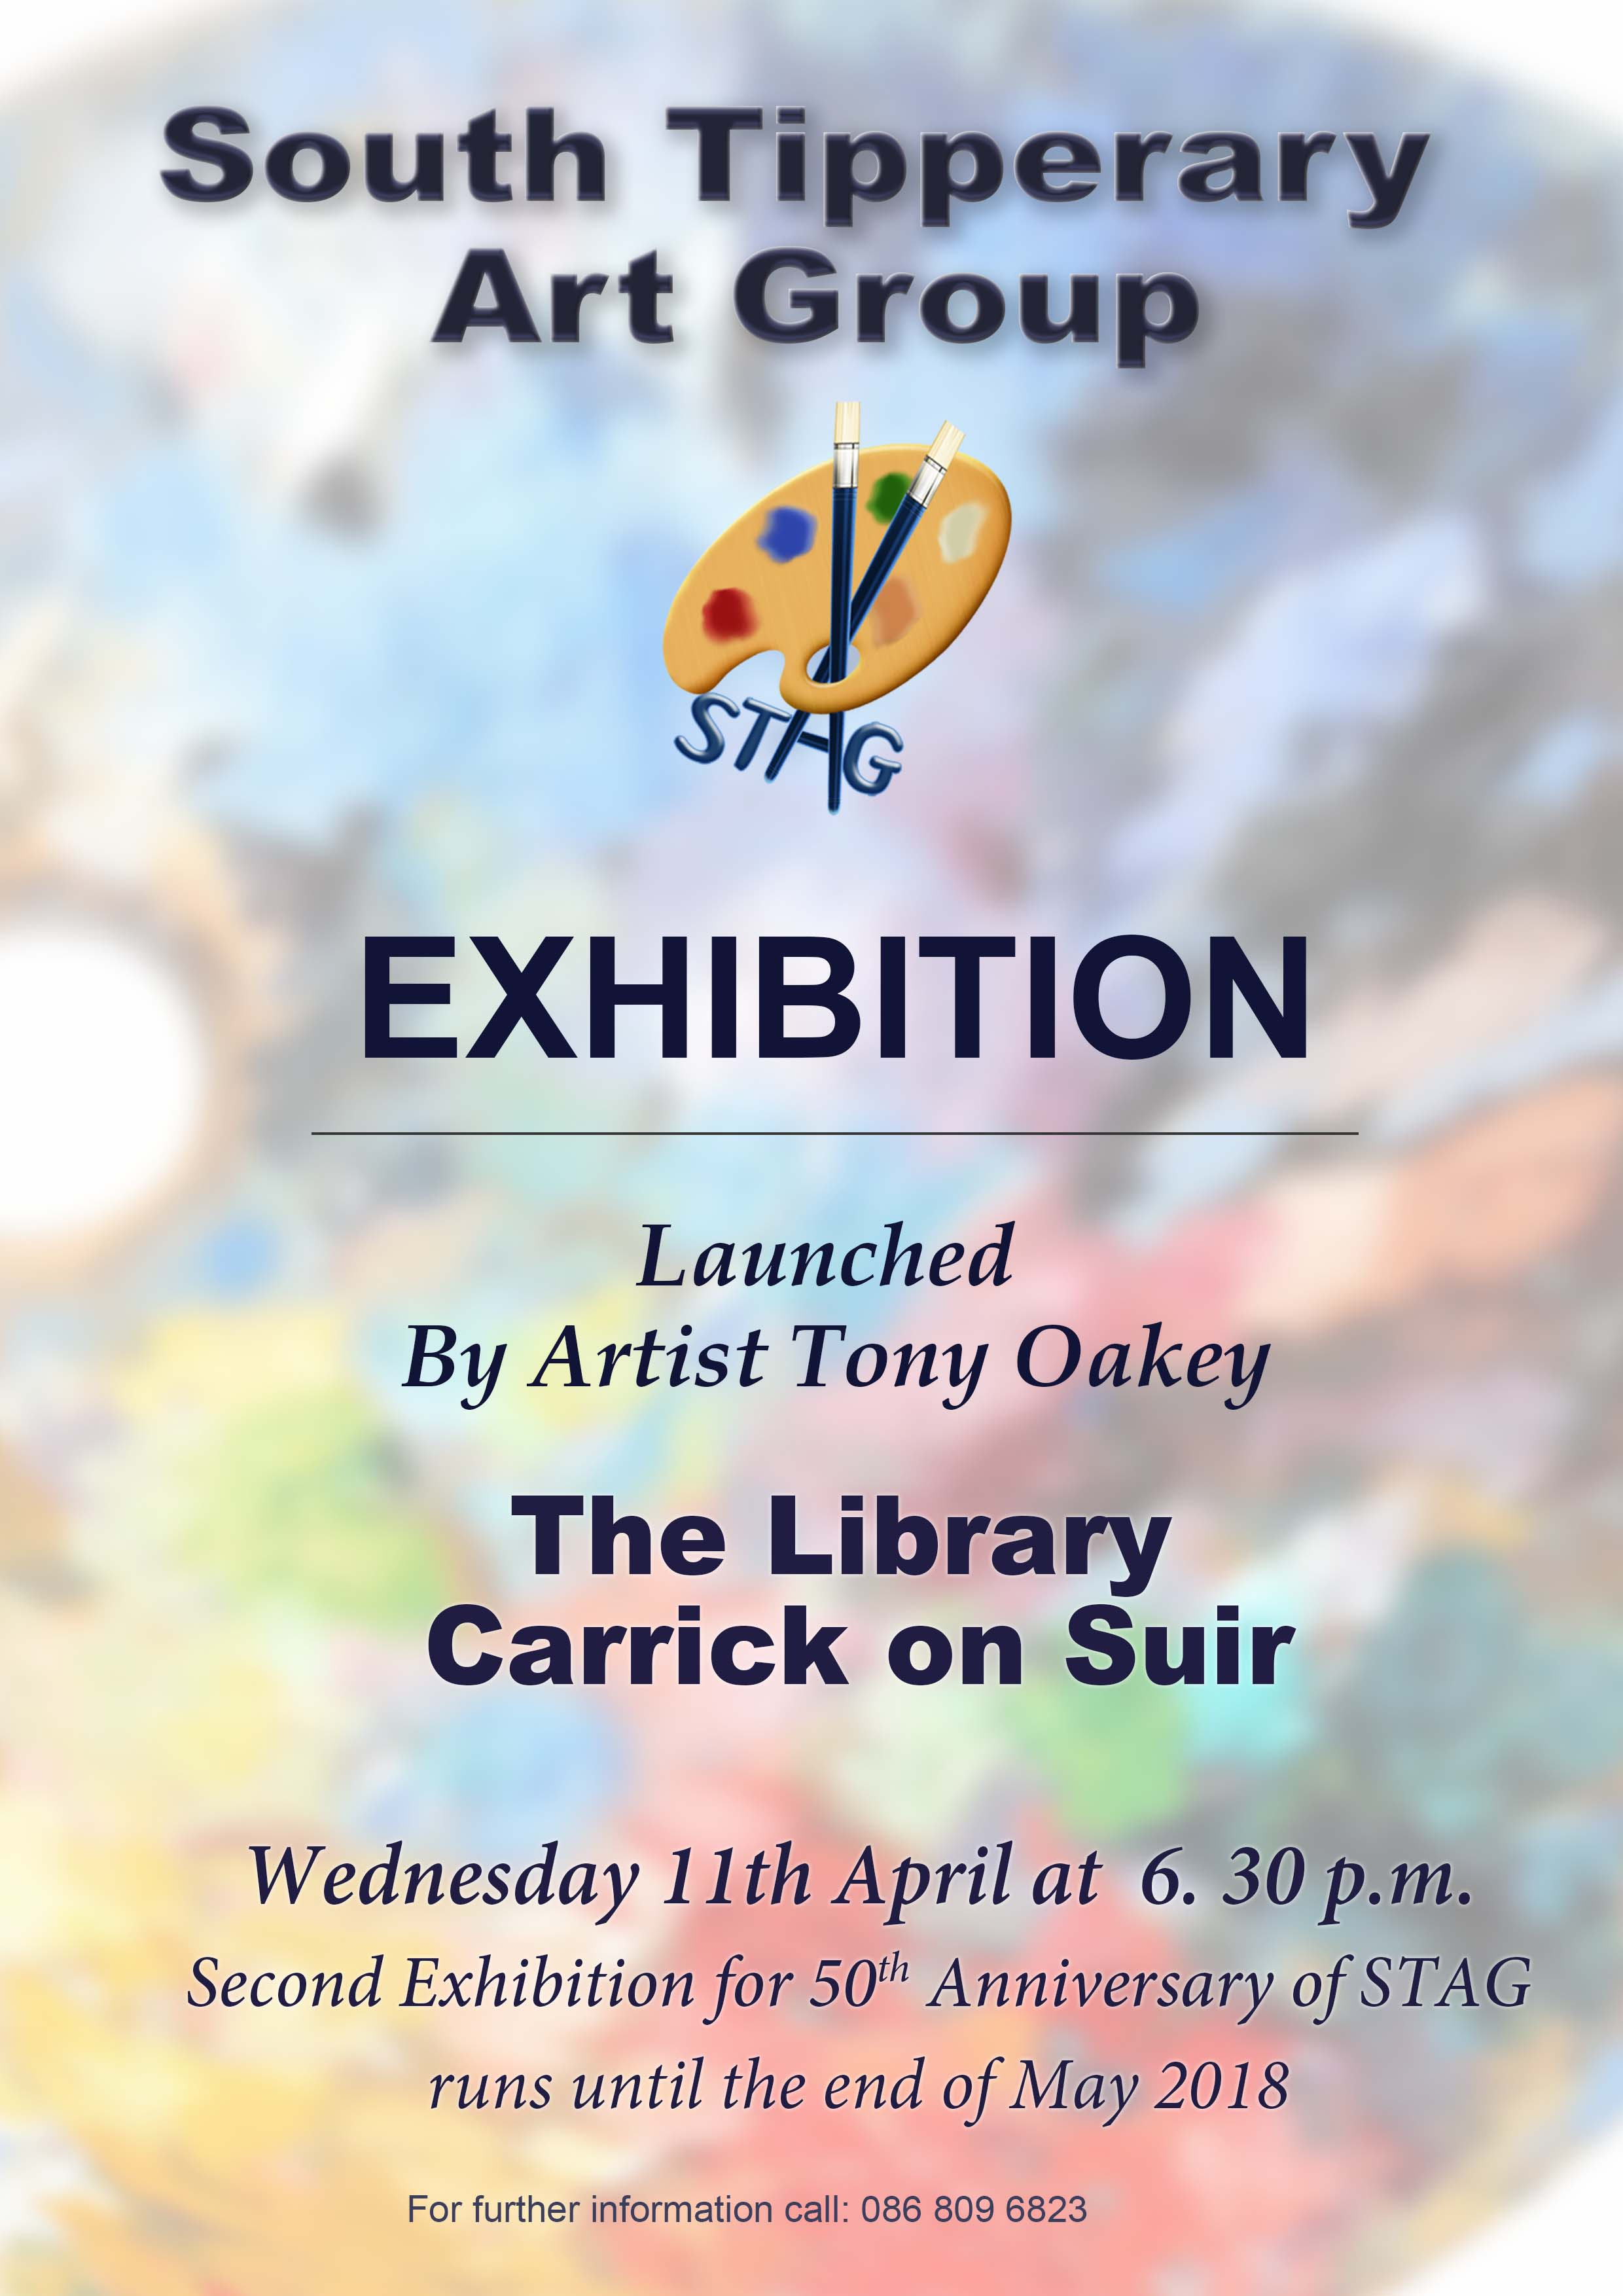 South Tipperary Art Group Exhibition Launch On Weds April 11th In Carrick On Suir Library